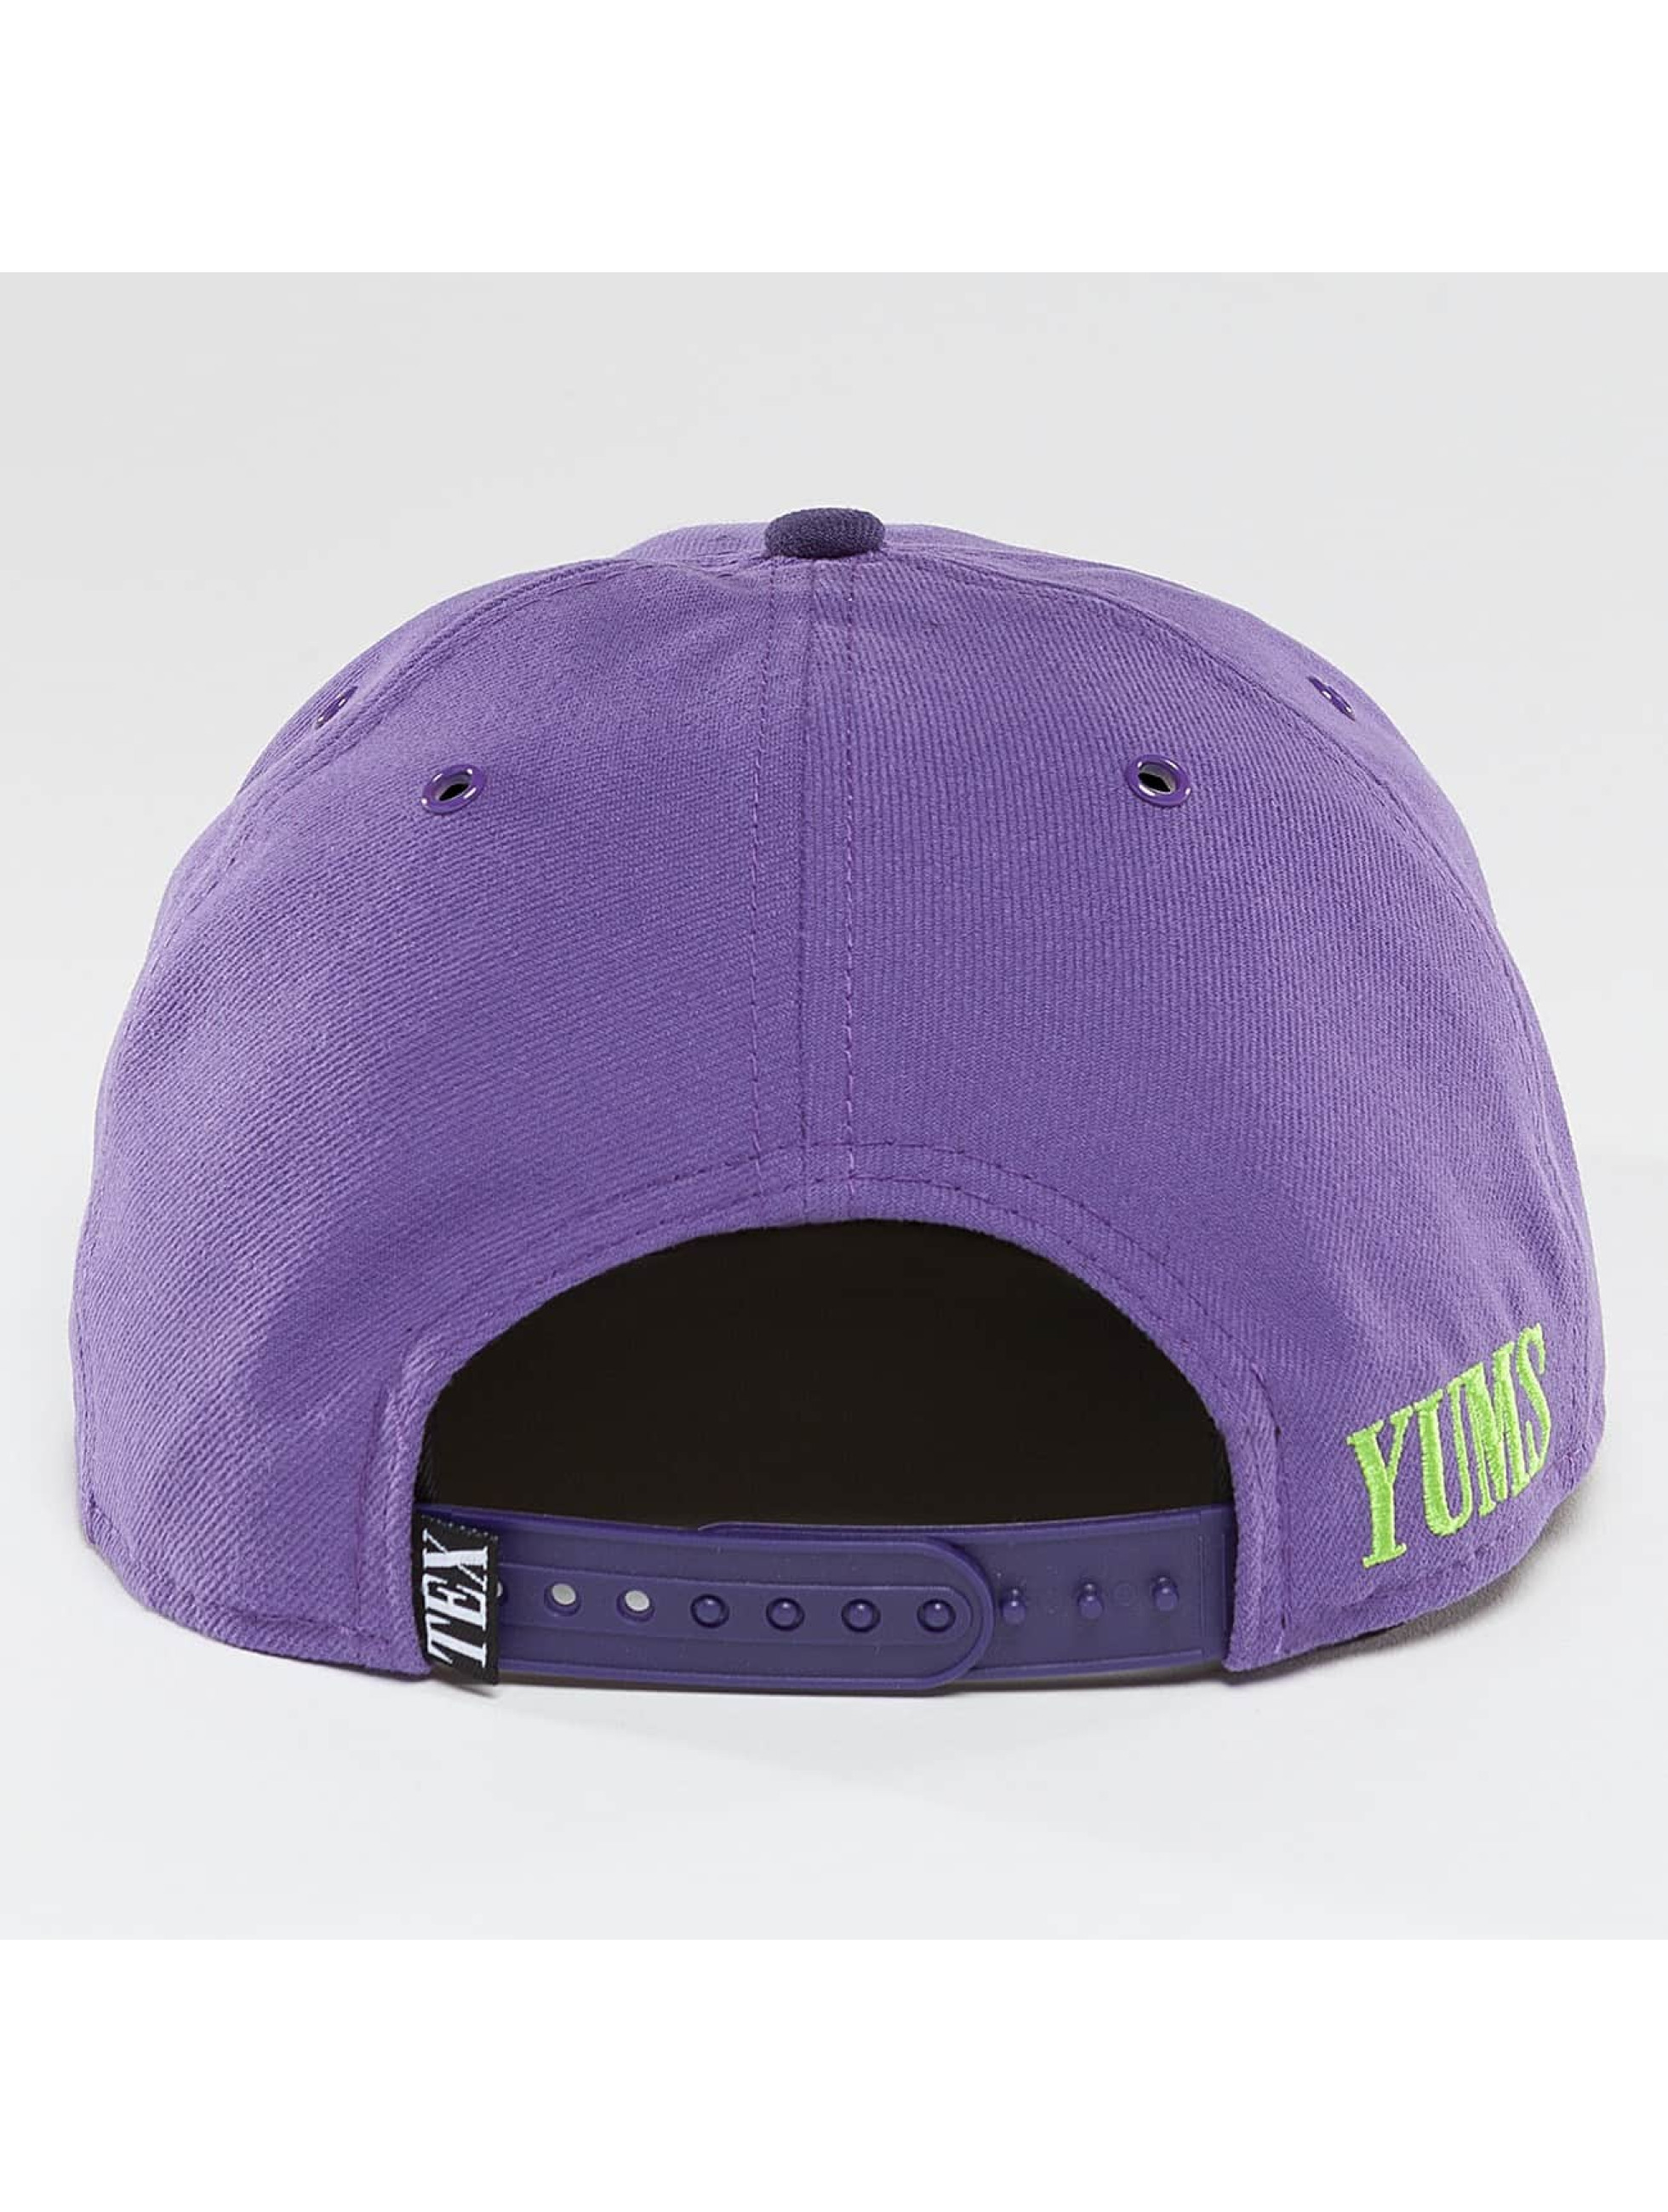 Yums Snapback Cap Black Tag Patch Face purple